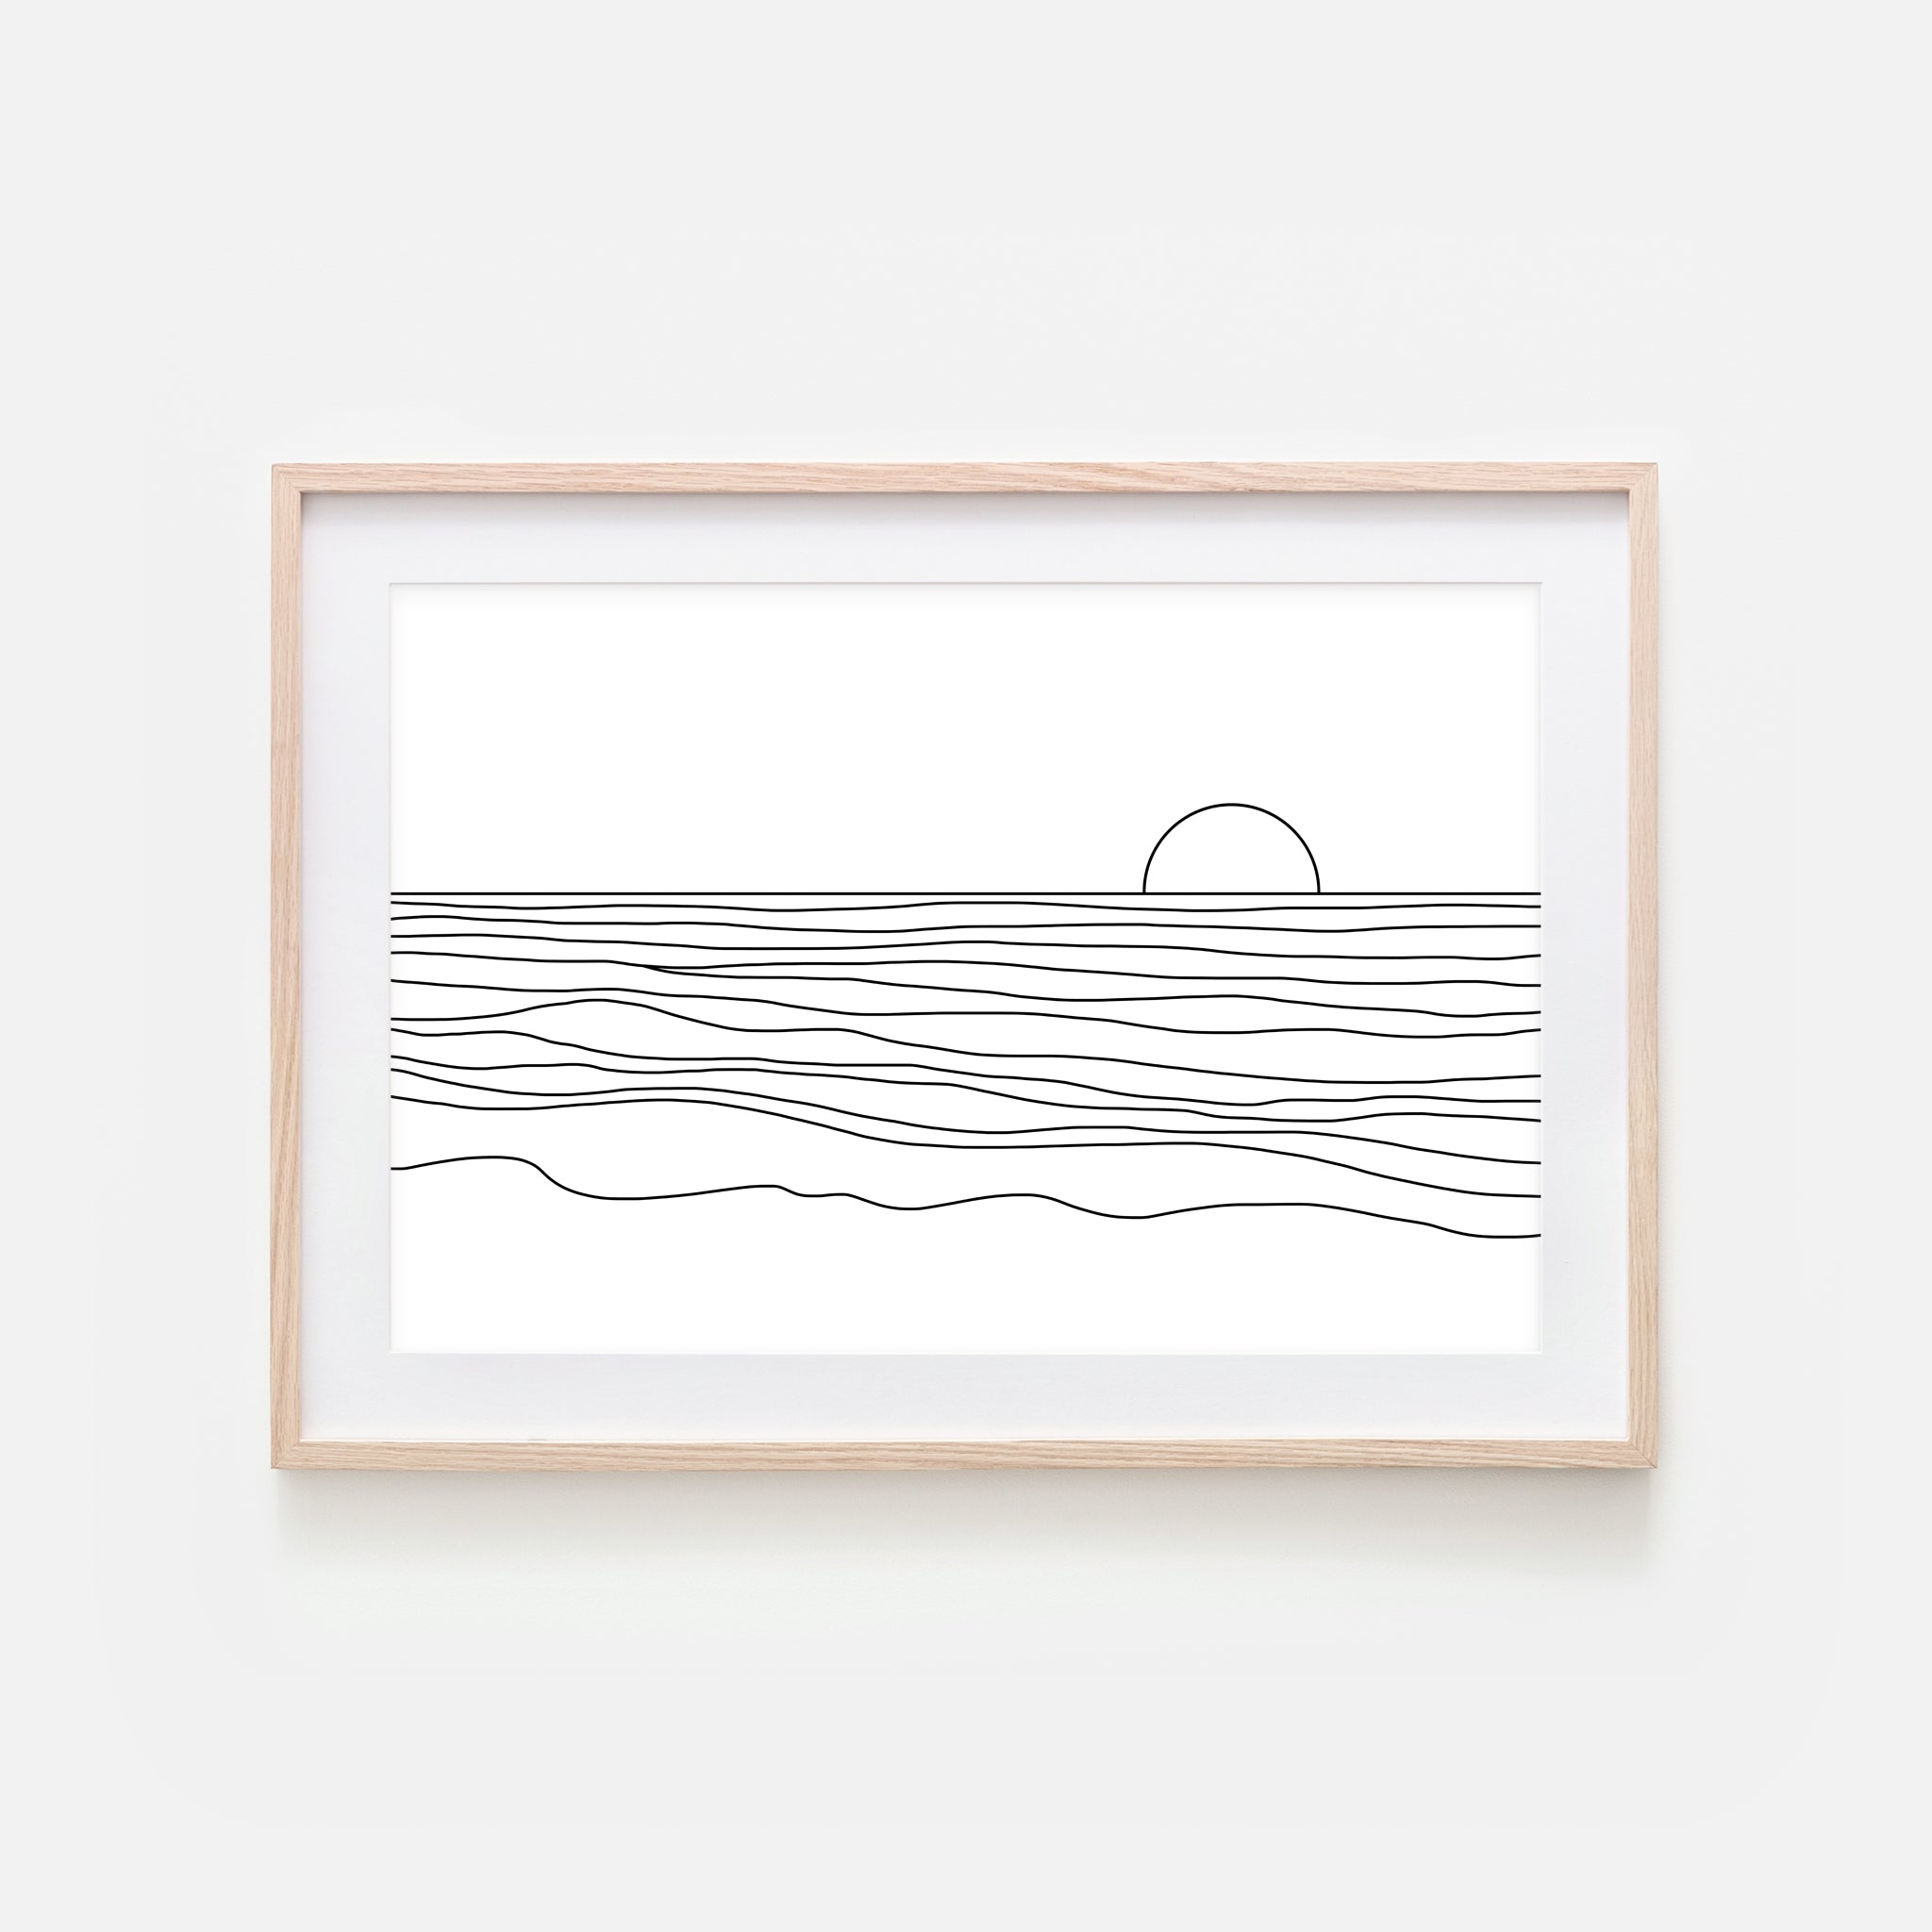 Sunset No. 5 Line Art - Minimalist Abstract Beach Ocean Landscape Wall Decor - Black and White Print, Poster or Printable Download